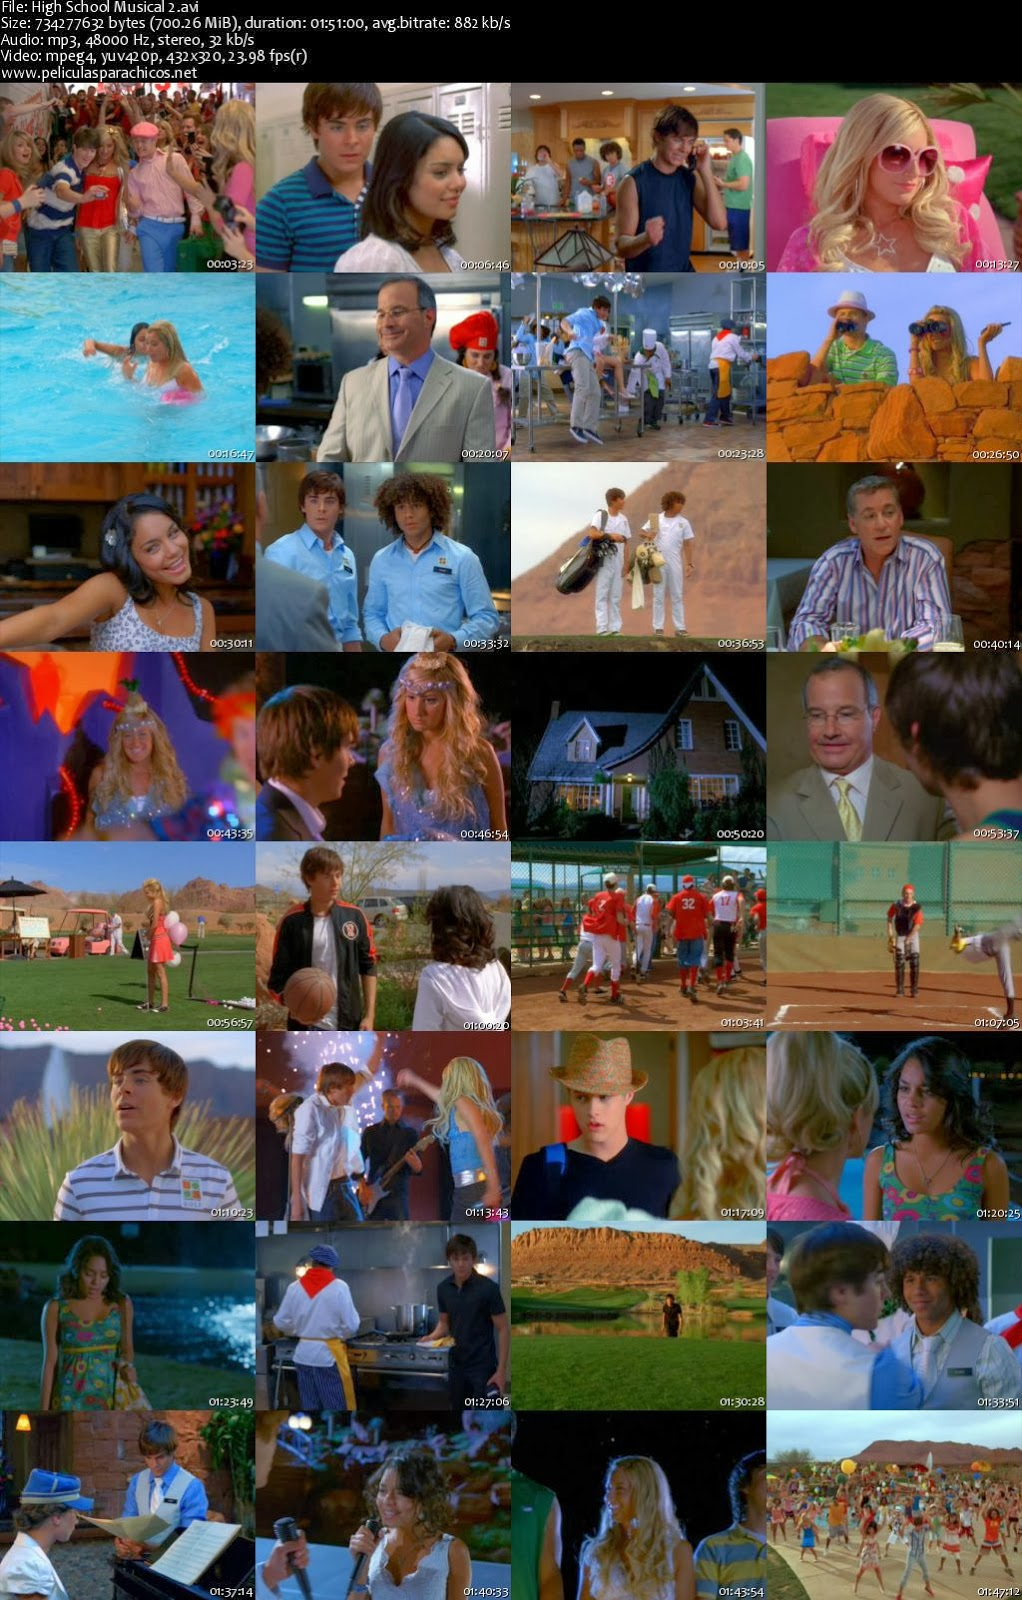 HIGH SCHOOL MUSICAL 2 | Peliculas Infantiles